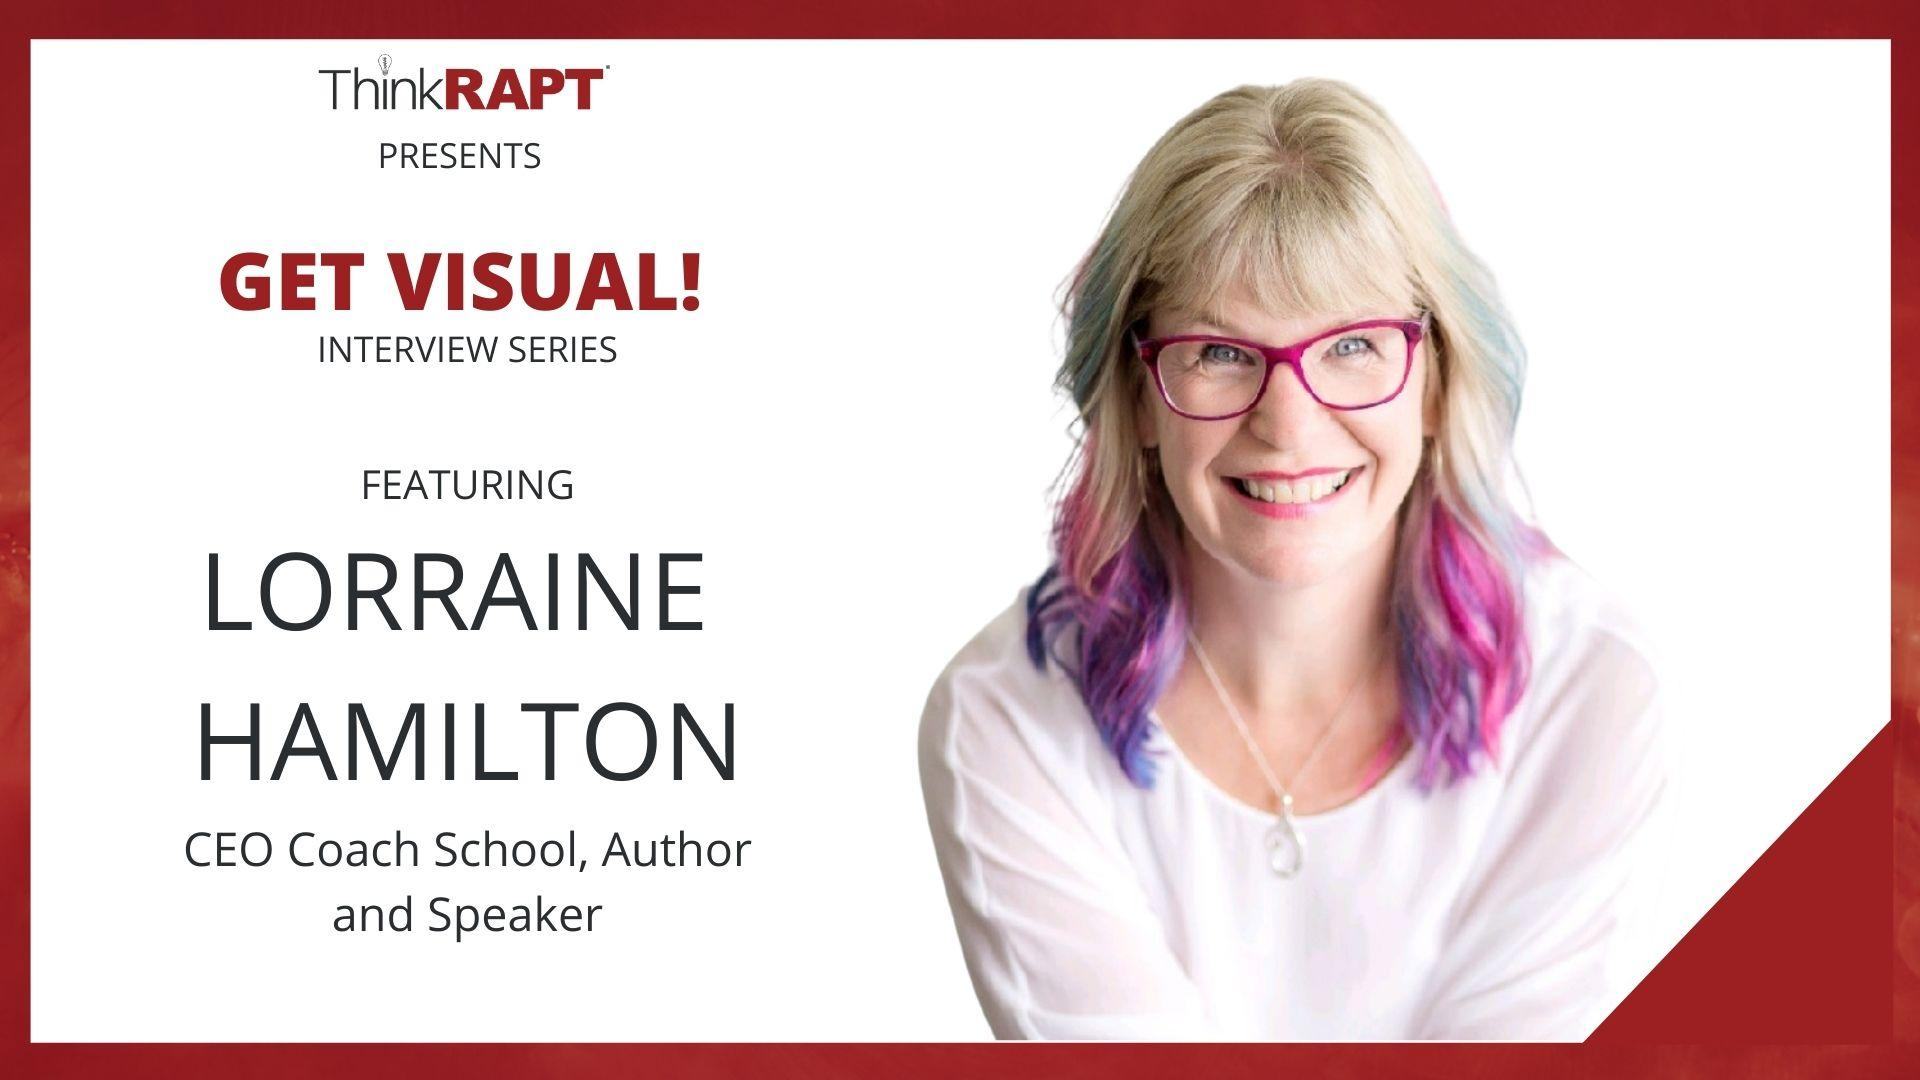 A woman with red glasses and purple pink tipped hair smiles at the camera. The words next to her read Think RAPT Presents Get Visual Interview Series featuring Lorraine Hamilton founder of Coach School